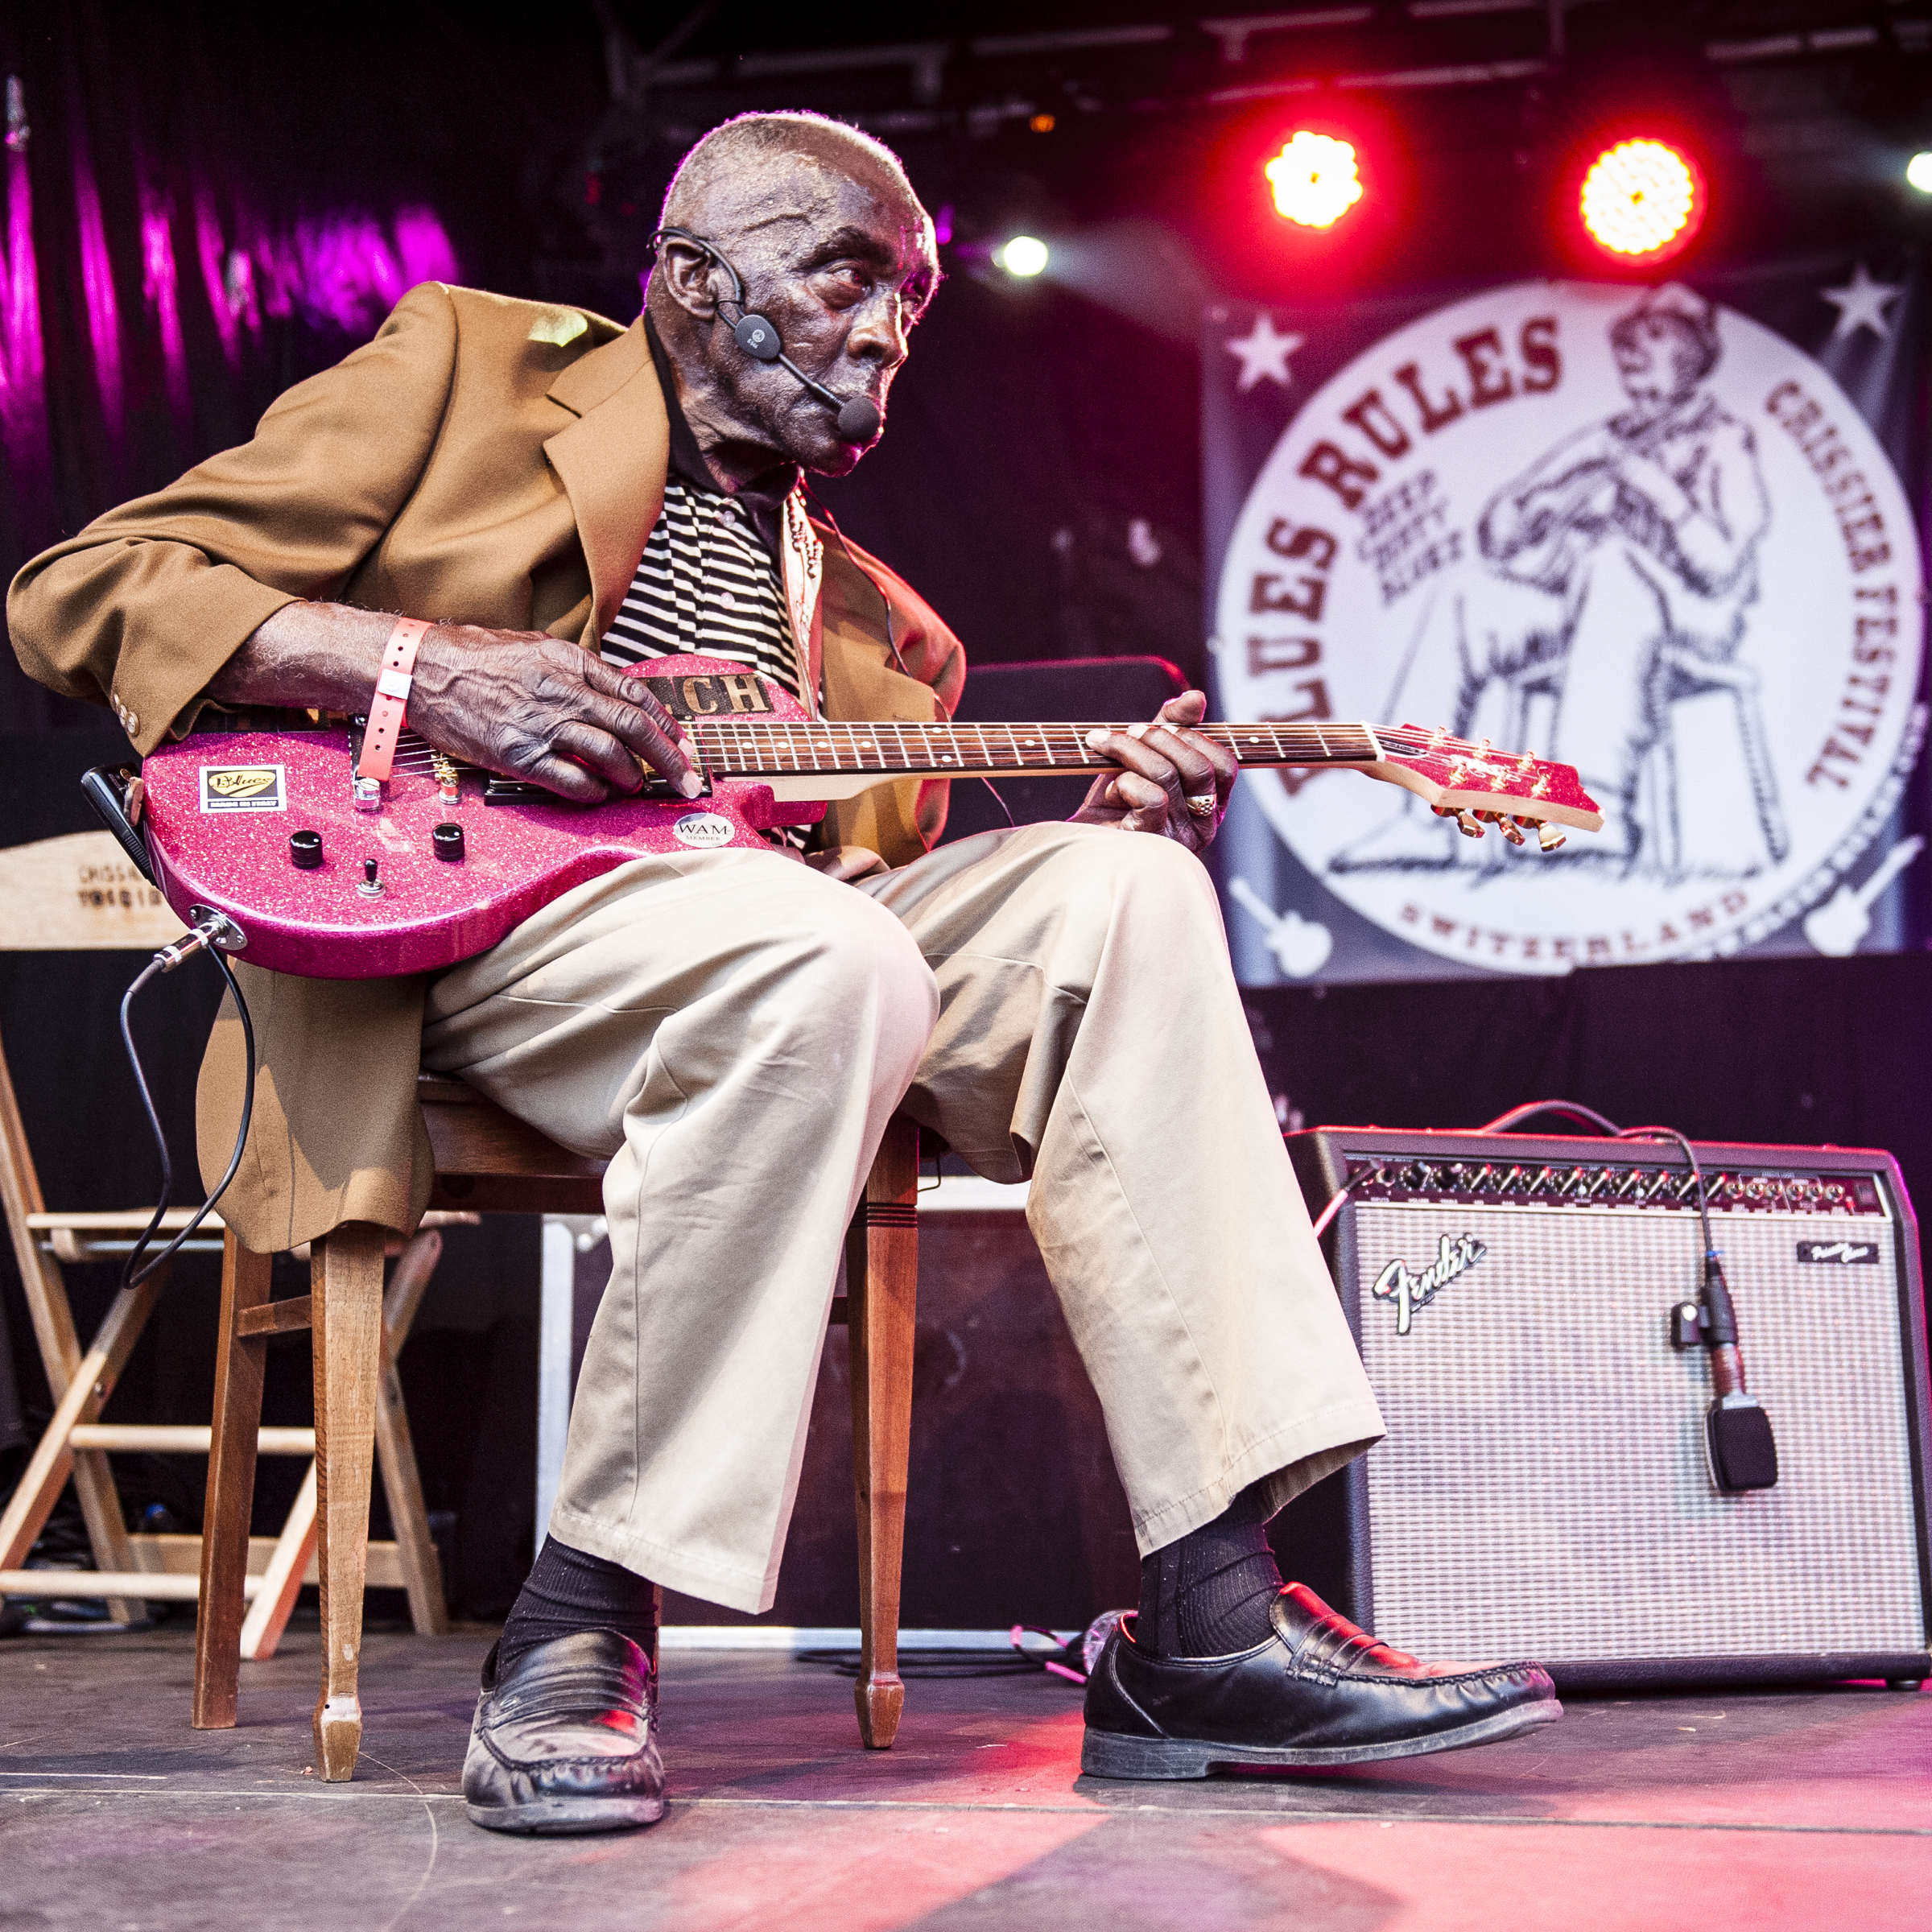 Leo Bud Welch Blues Rules Crissier Festival 2014, fifth edition